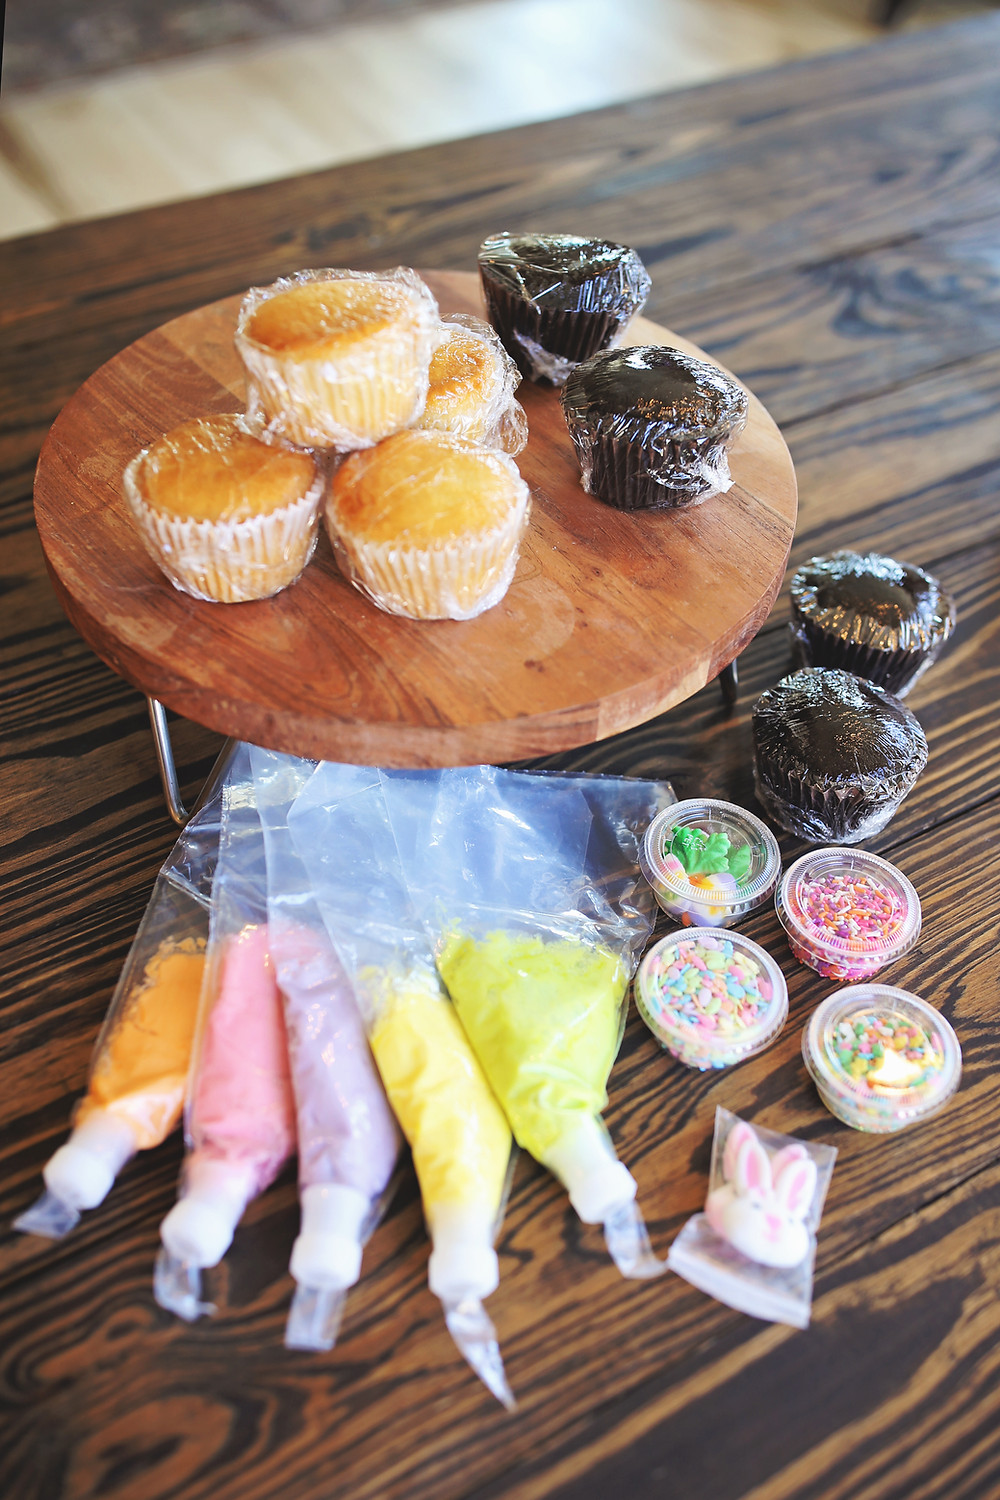 Cupcakes, icing, and sprinkles from Sweetology